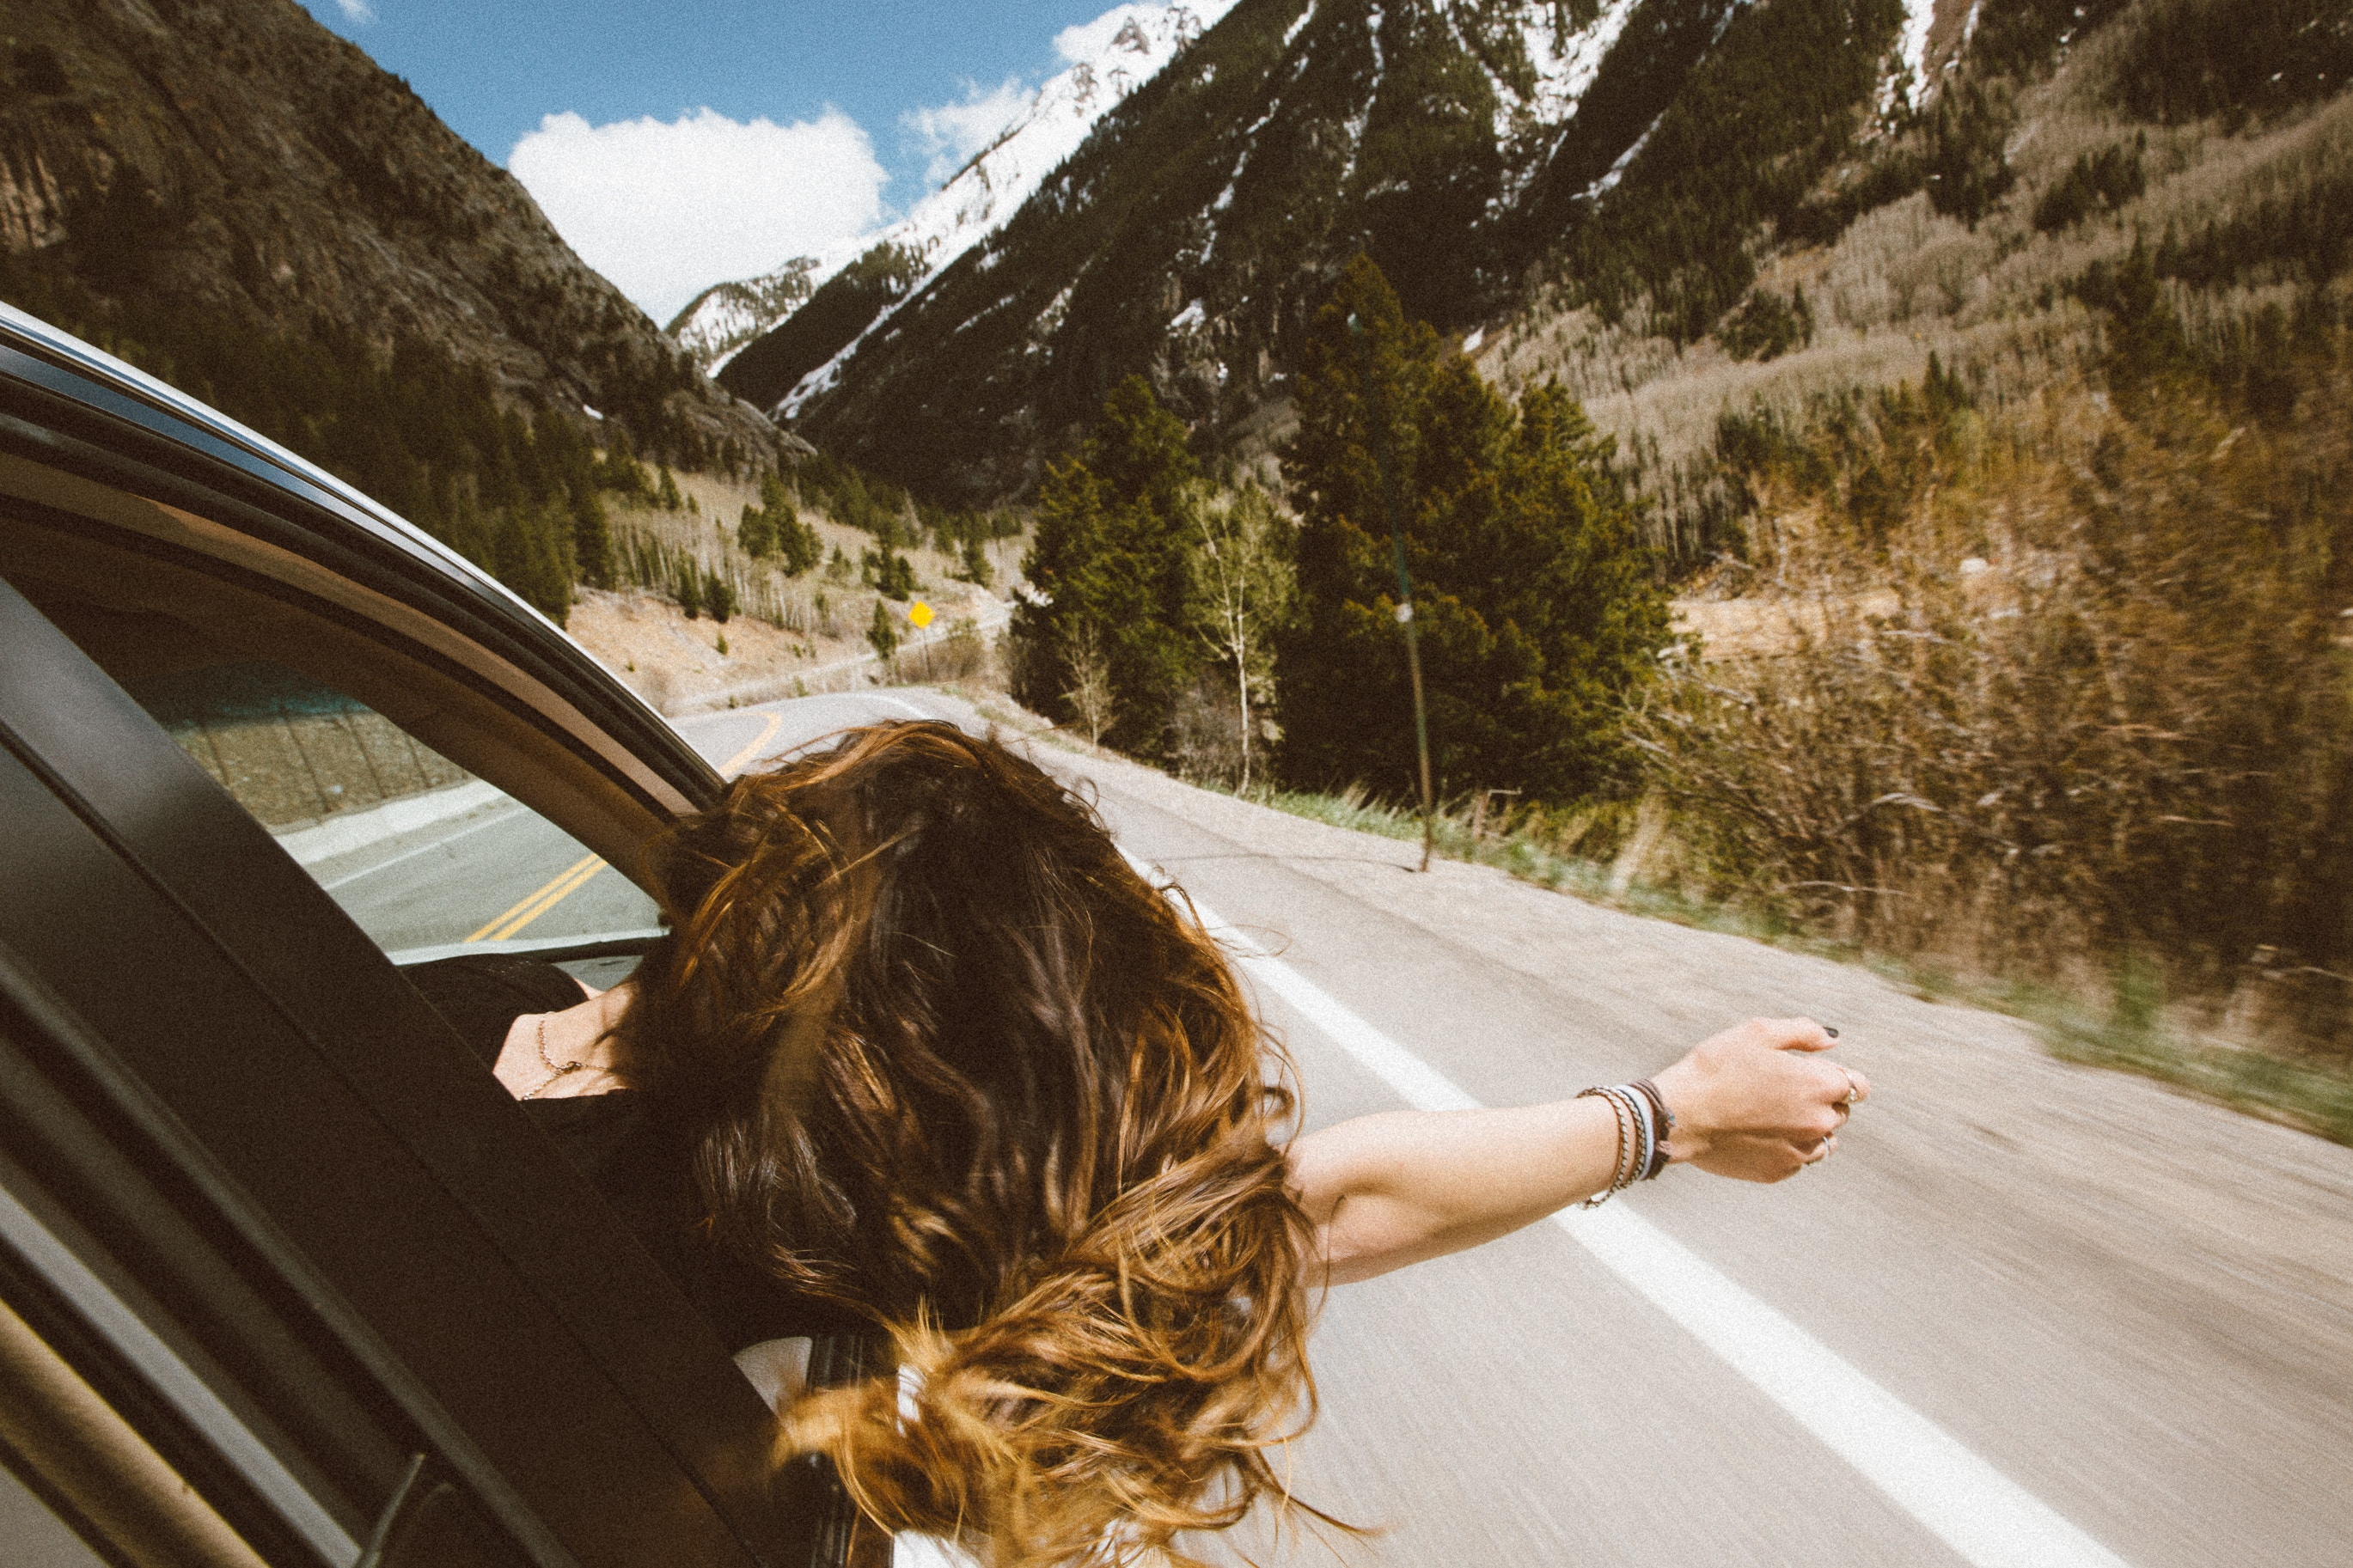 woman in car on her journey toward mountains - might need faith